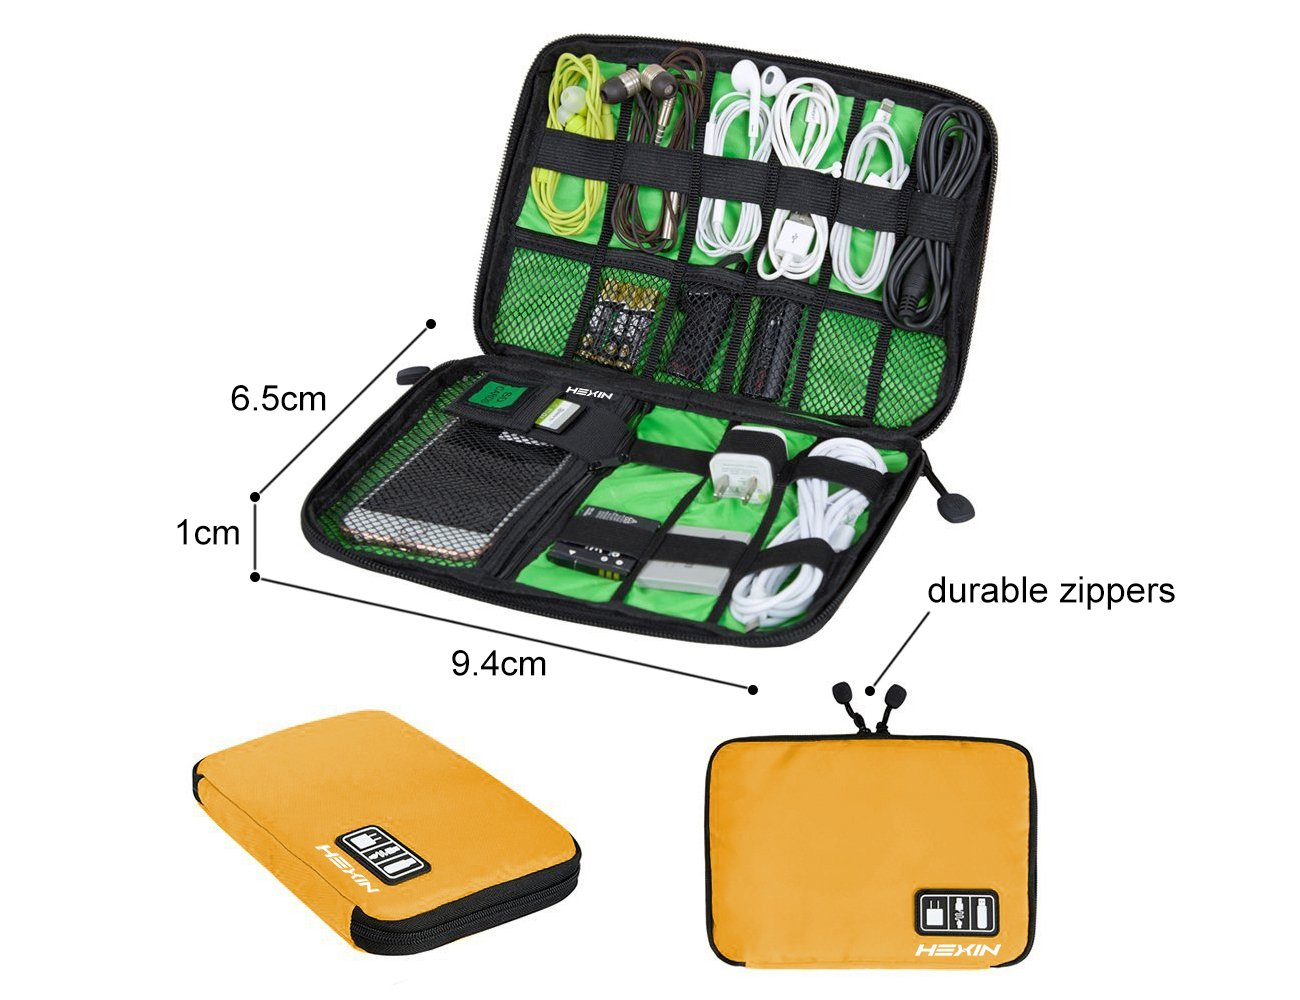 Universal Double Layer Travel Gear Organizer / Electronics Accessories Bag Battery Charger Case Multi colors